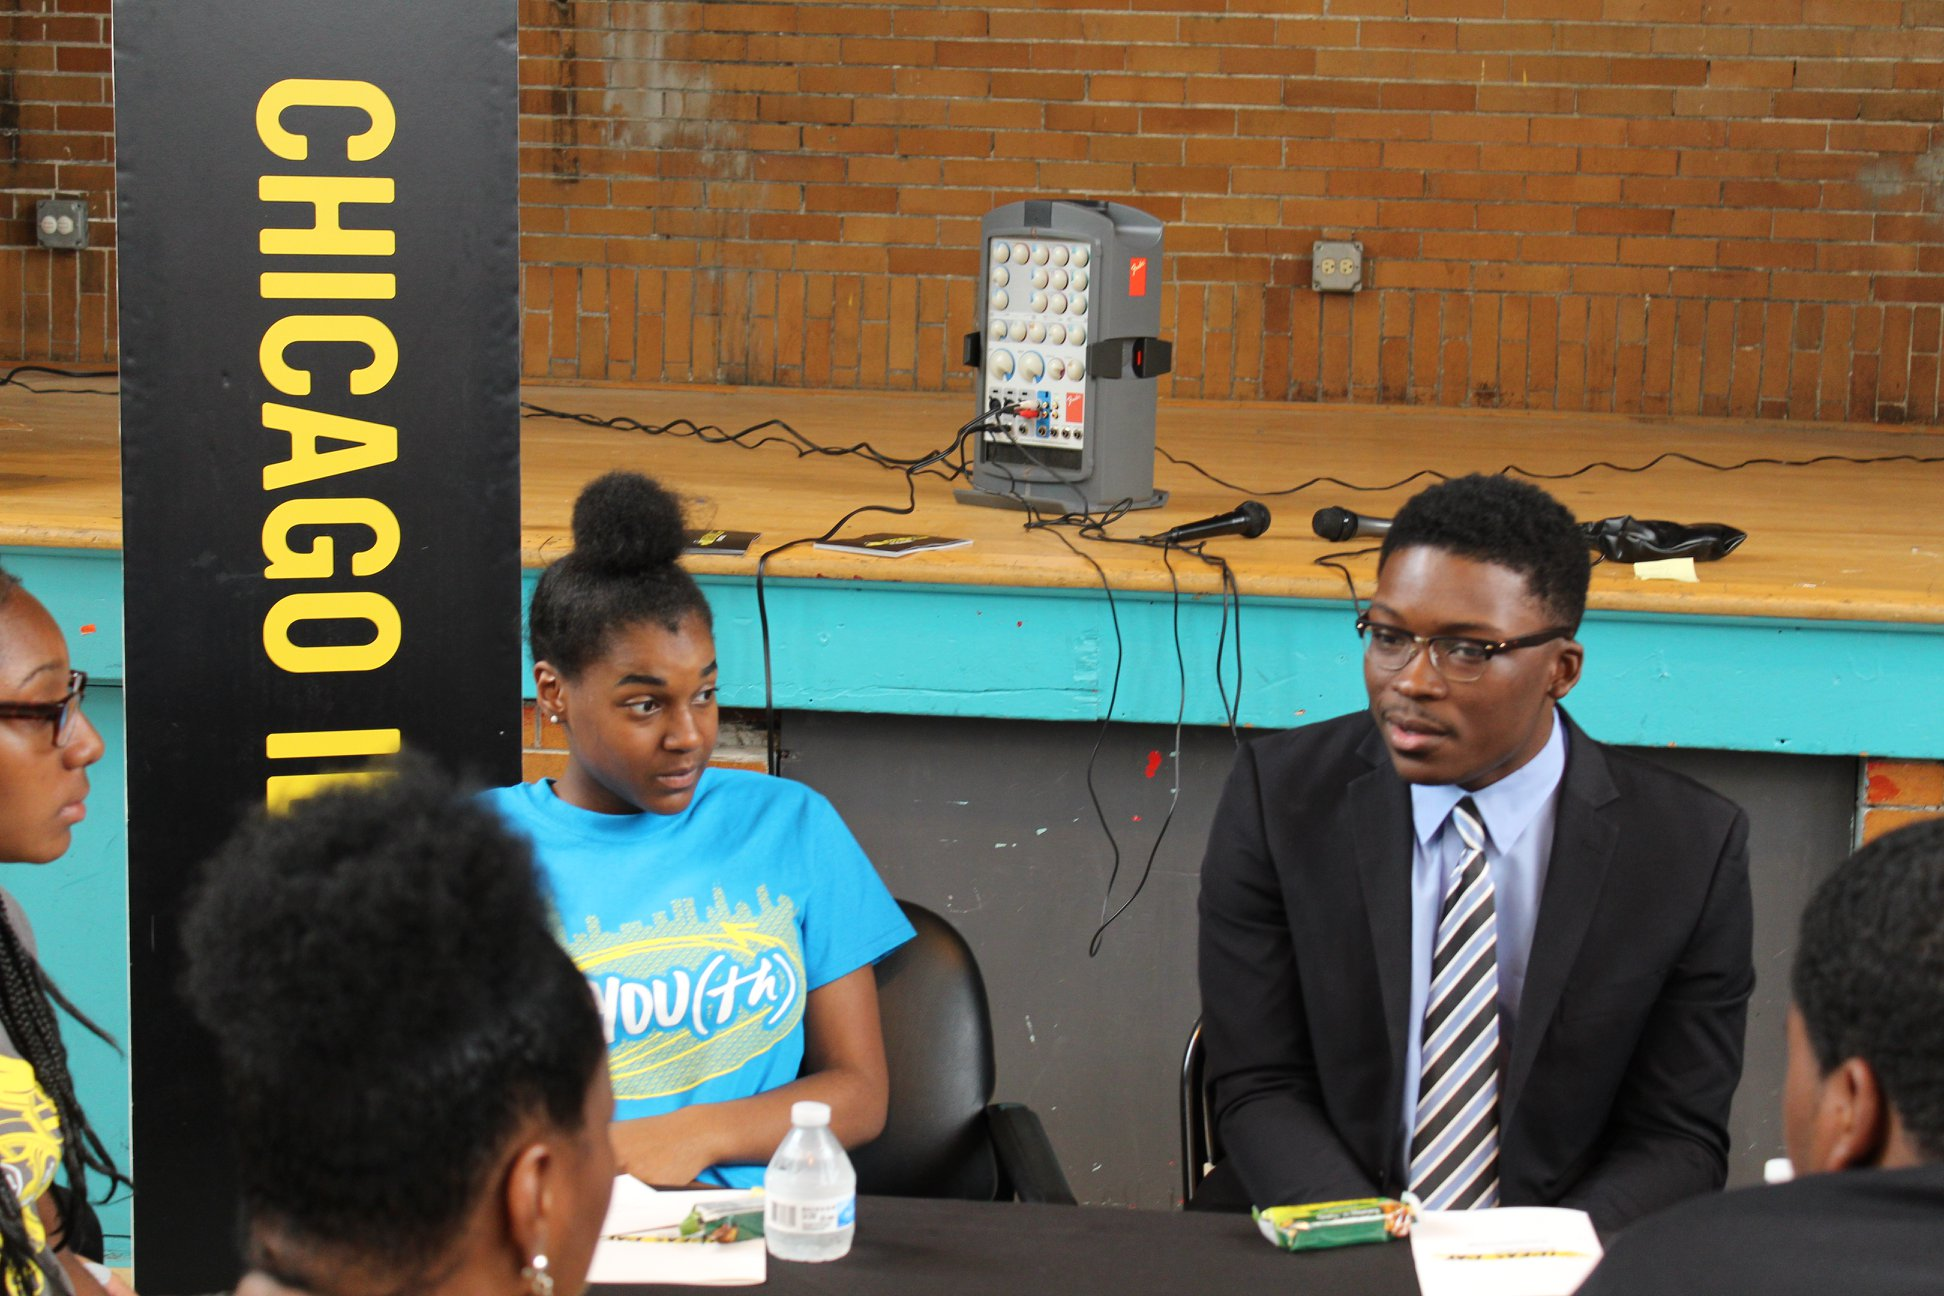 Community activist and mayoral candidate Ja'Mal Green discusses youth impact with CYC teens.